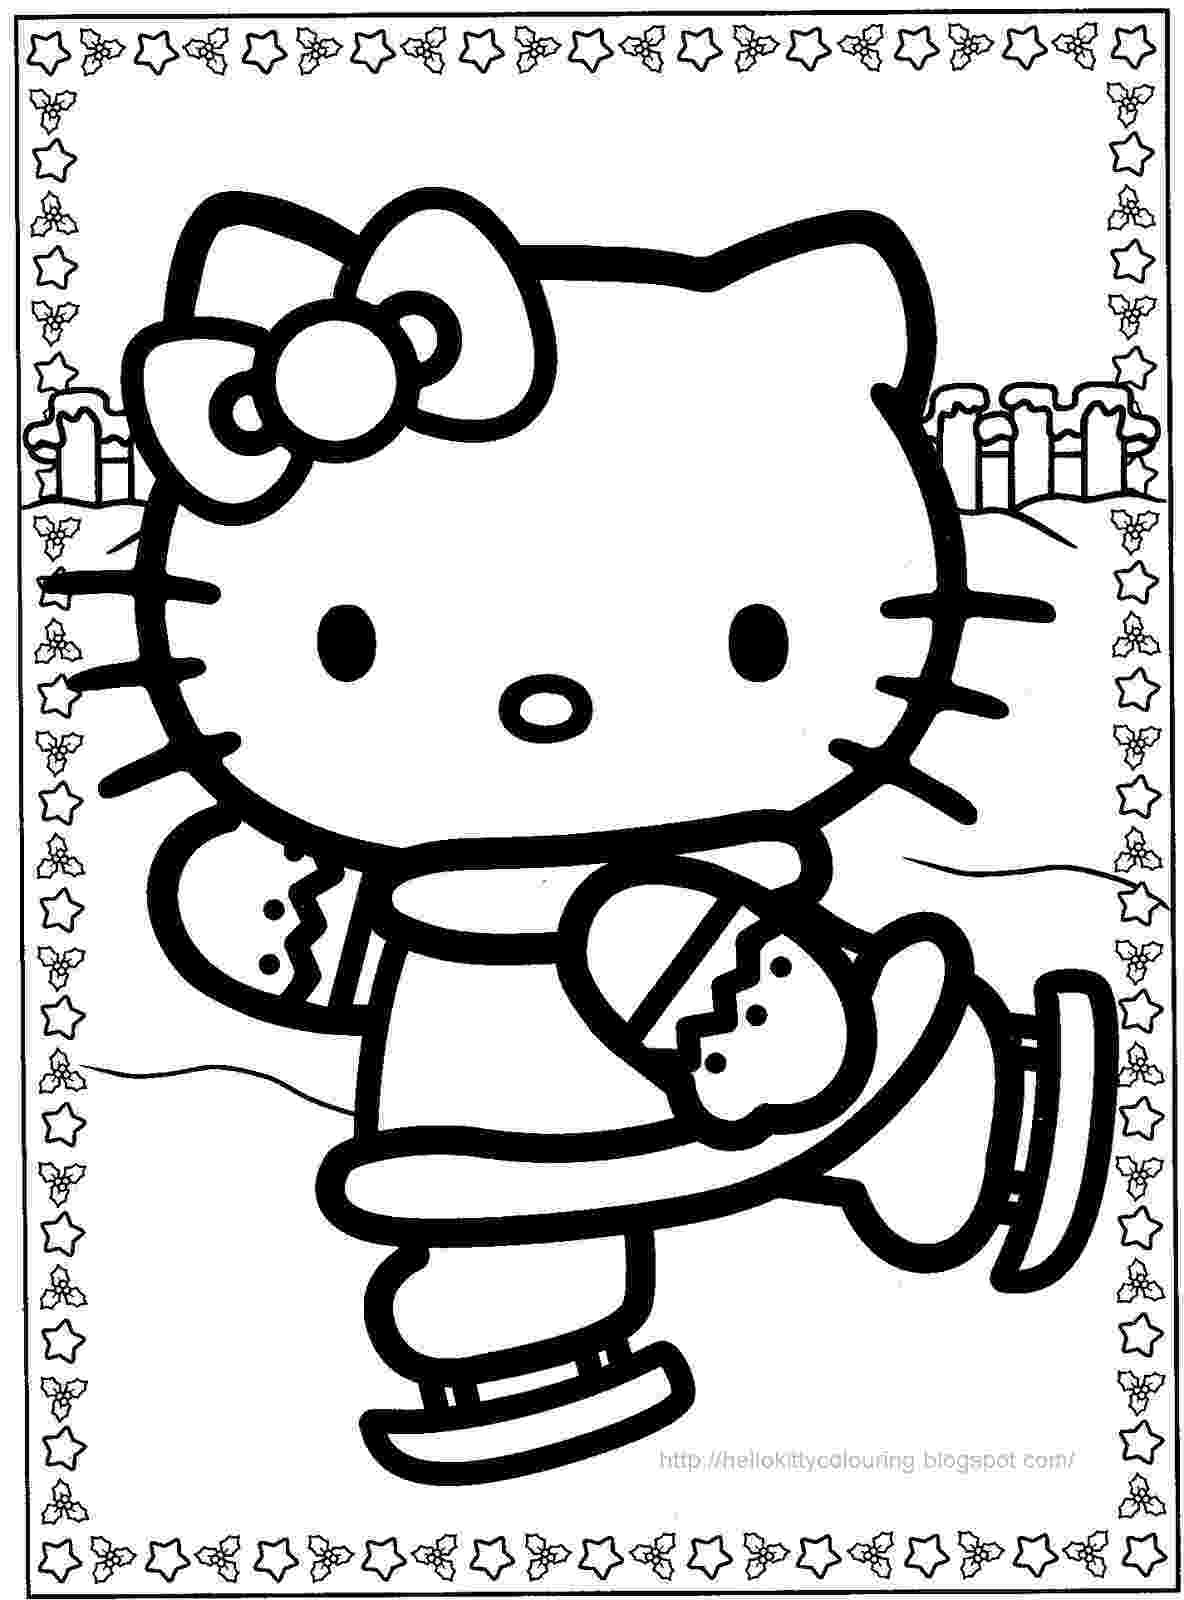 hello kitty coloring pages free bauzinho da web baÚ da web desenhos e riscos da hello hello coloring kitty free pages